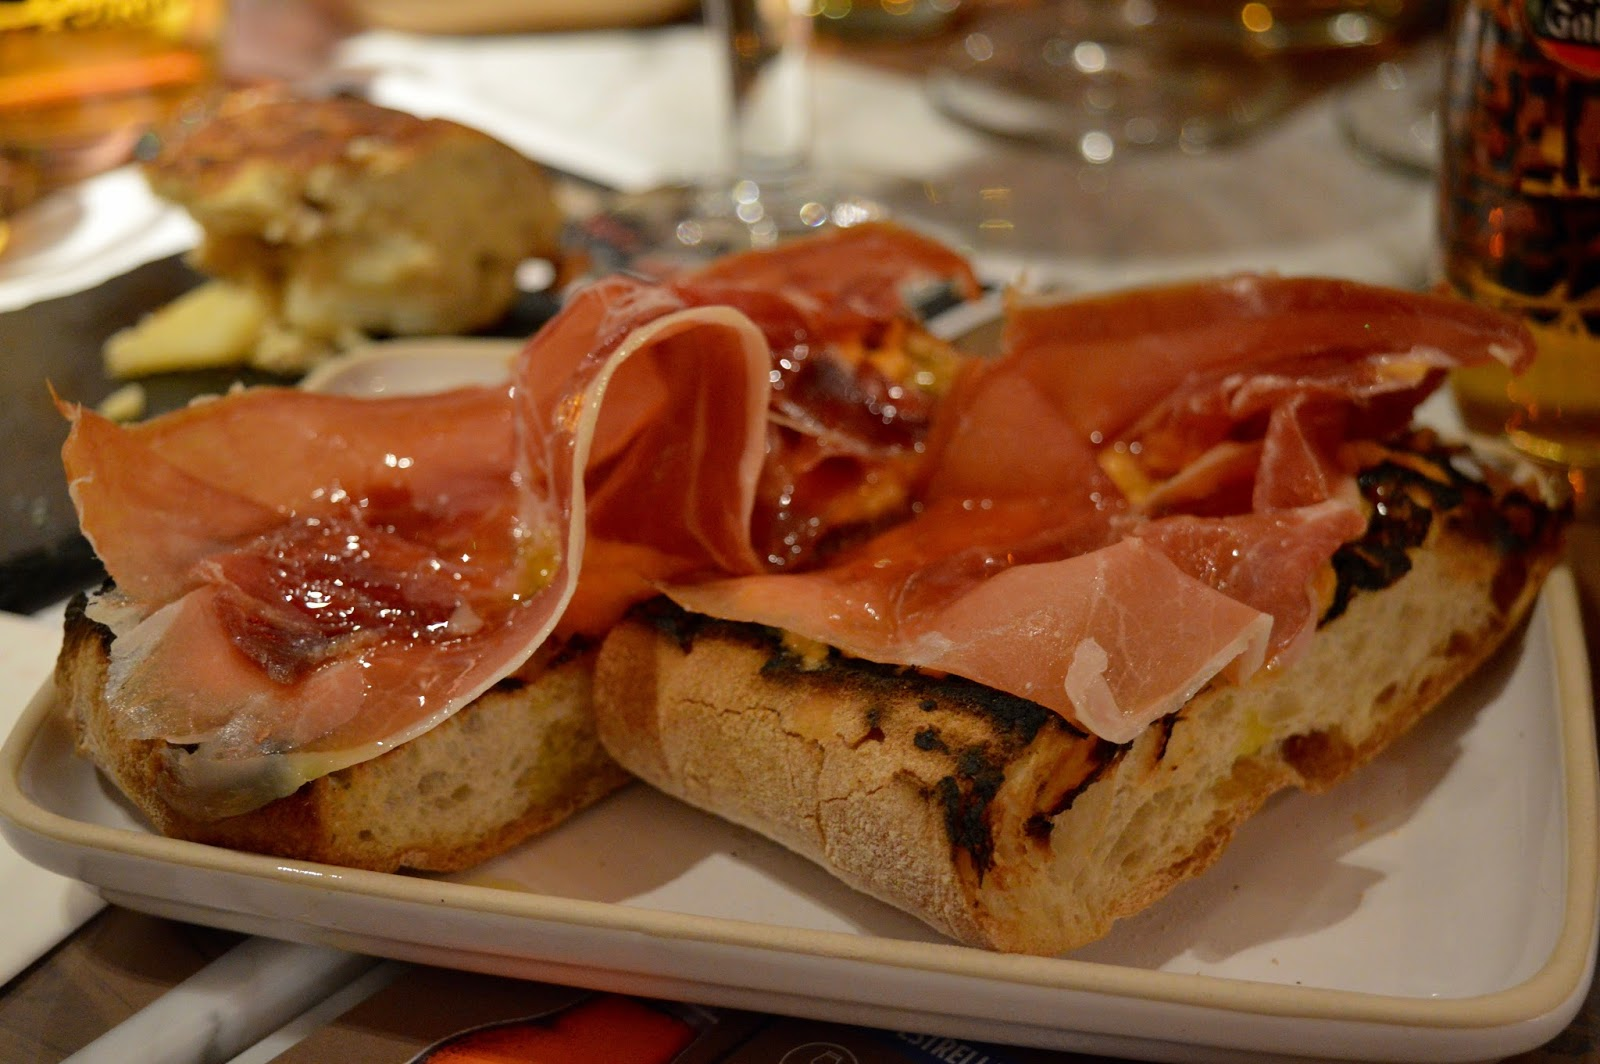 Tapas Revolution Newcastle at intu Eldon Square | Menu Review & Recommendations | Tomato bread with Serrano ham